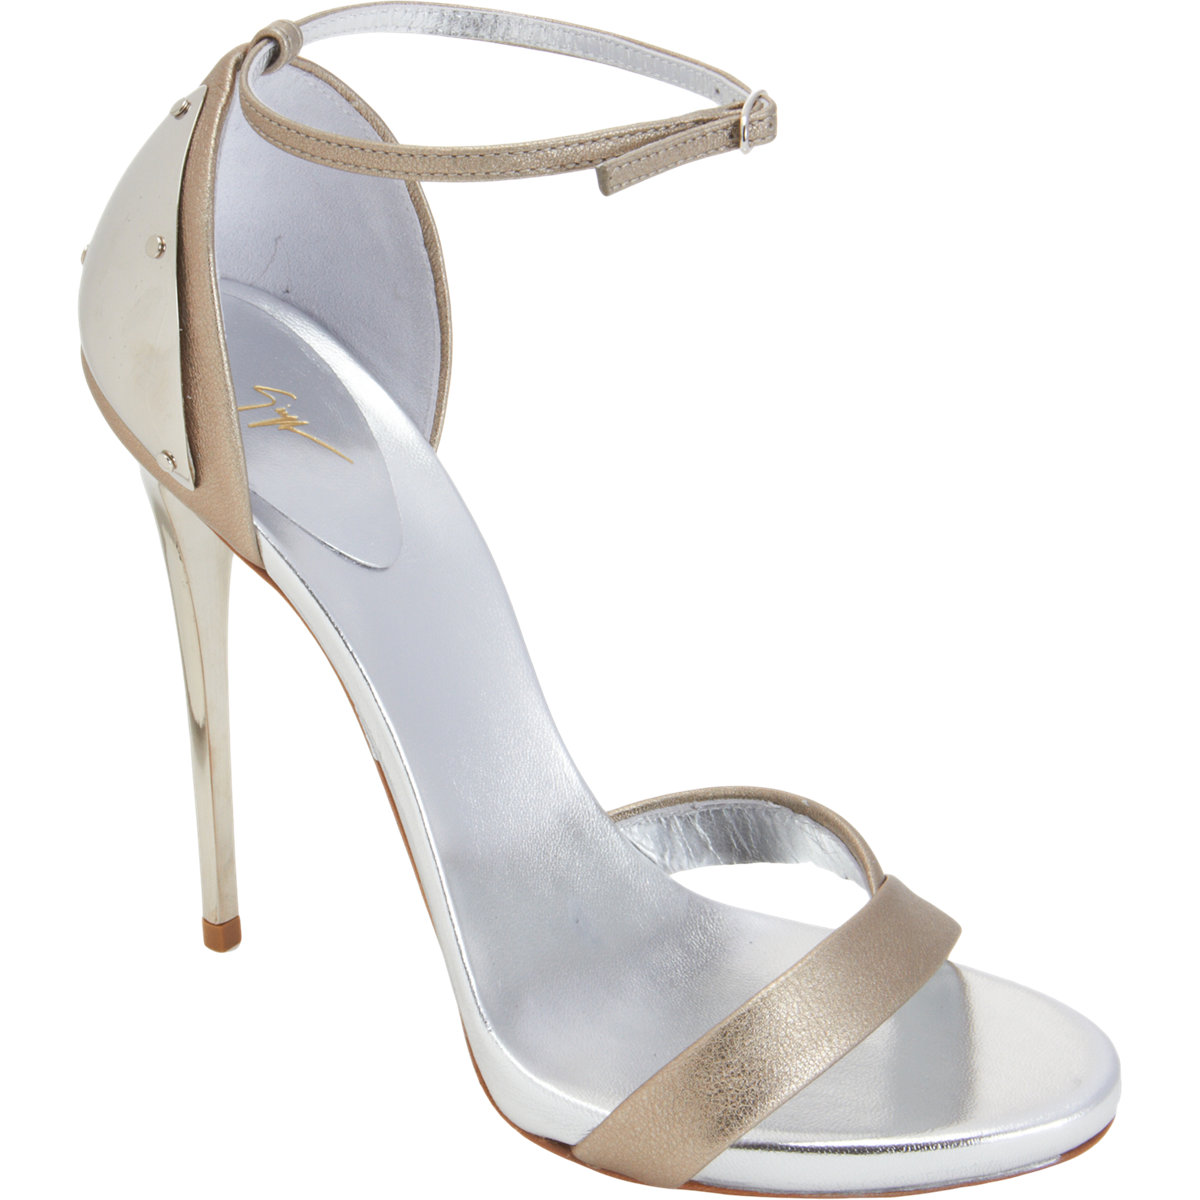 fecf9904272c Plated heel silver sandals by Giuseppe Zanotti in pewter and silver